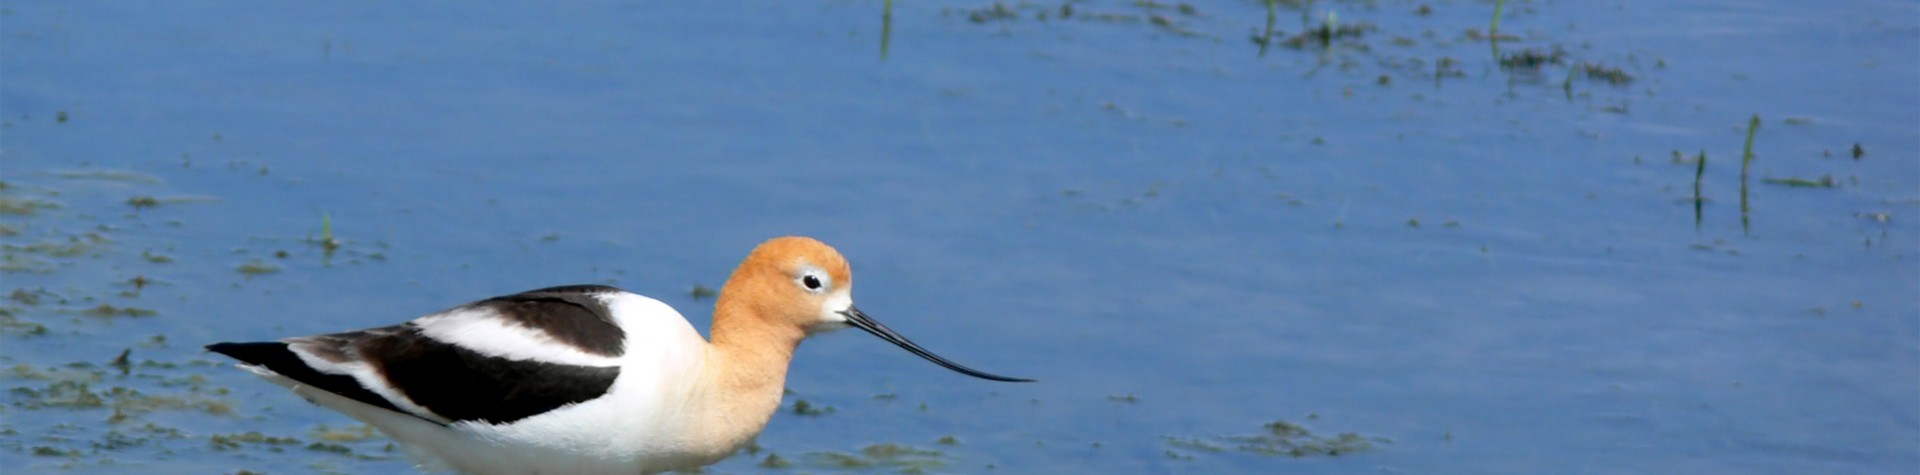 image of american avocet